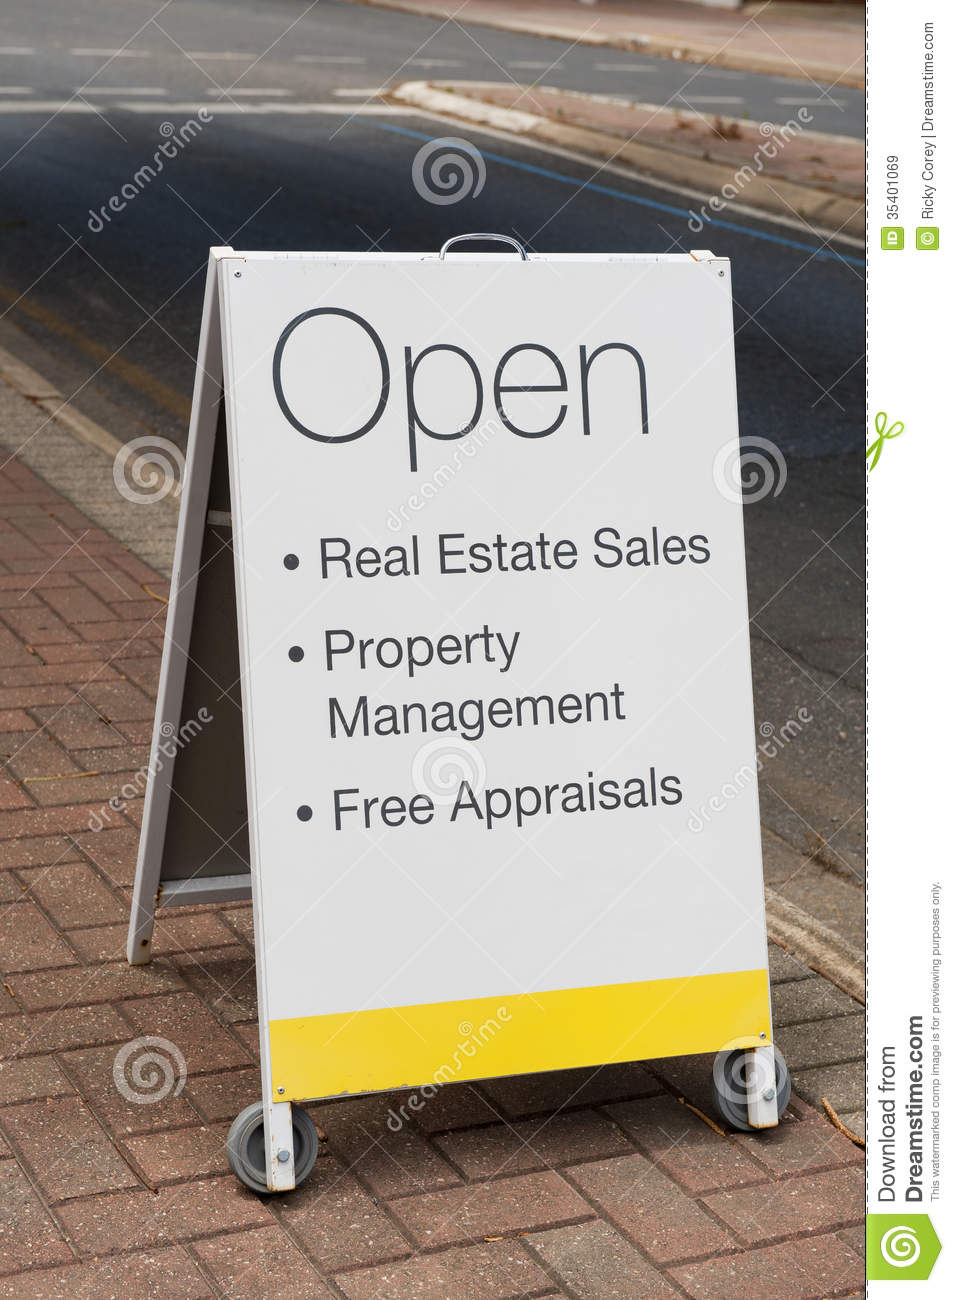 Real Estate Sandwich Board Royalty Free Stock Images - Image: 35401069